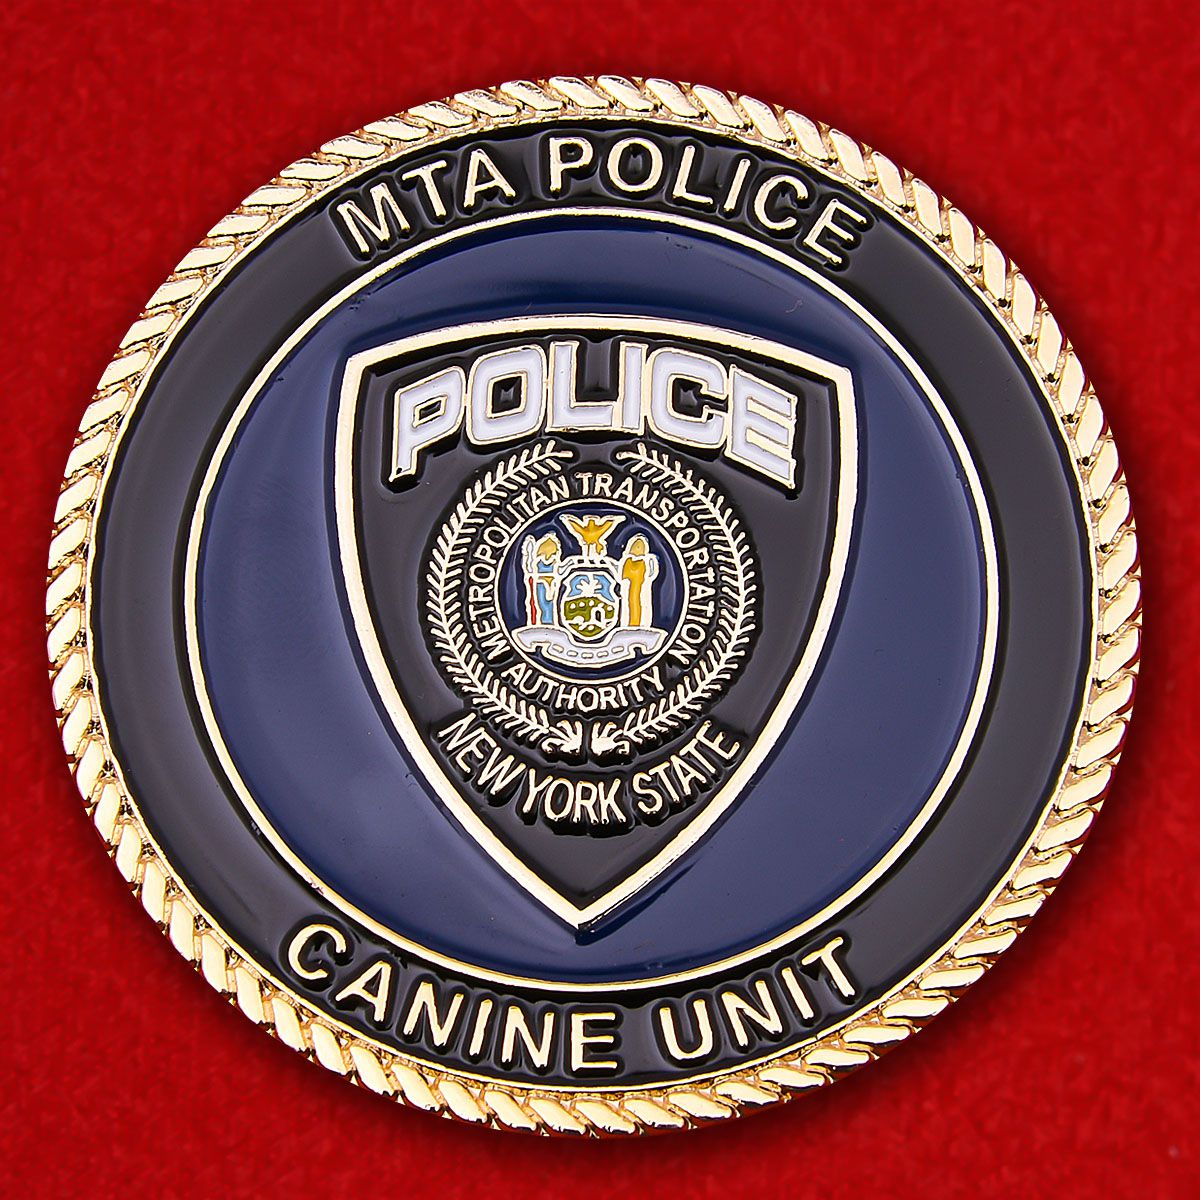 Canine Service Transport Police Department of New York Challenge Coin